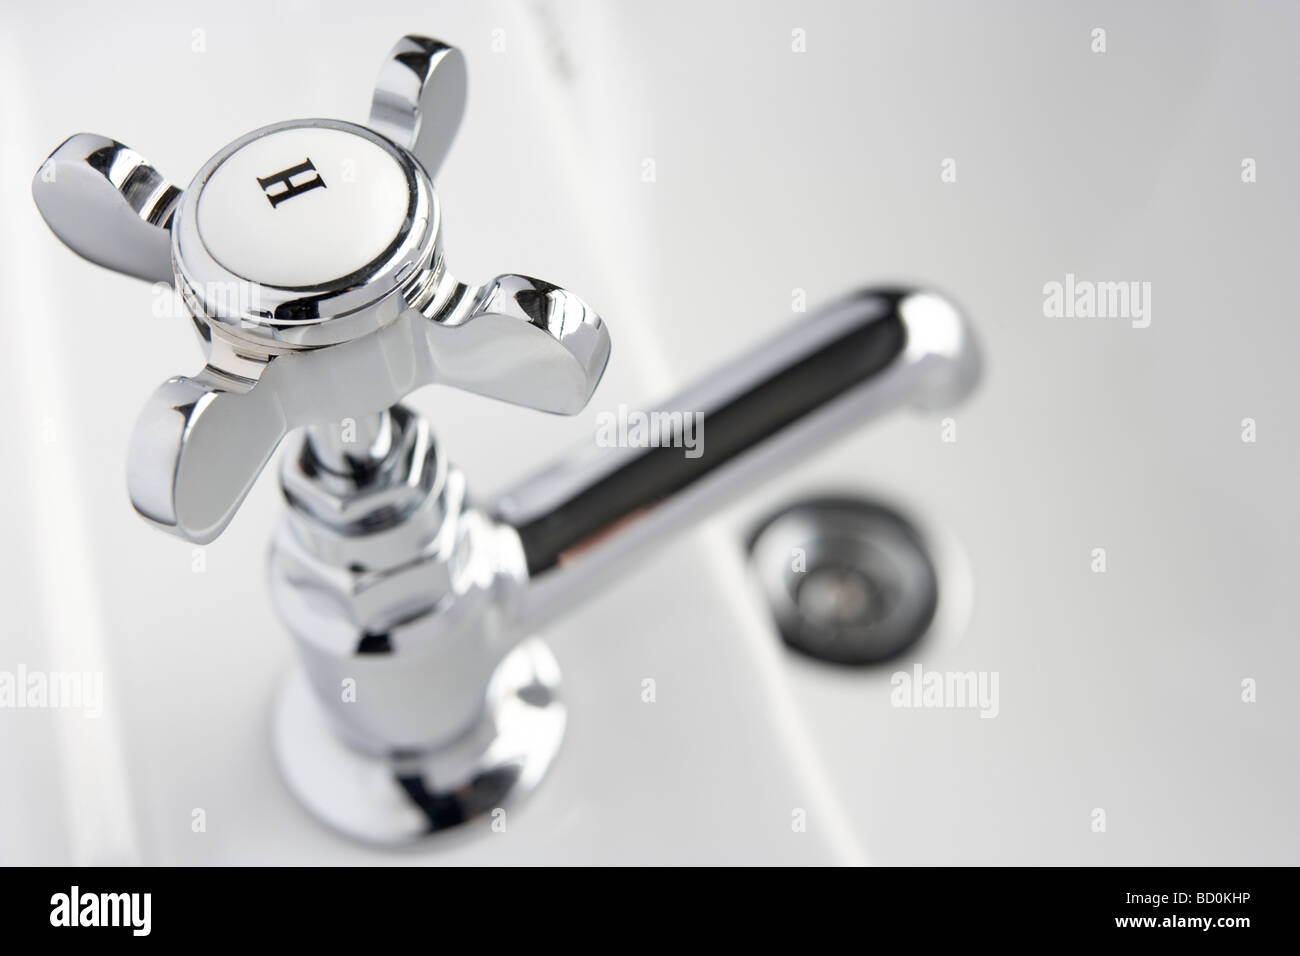 Hot Tap On Hand Basin - Stock Image